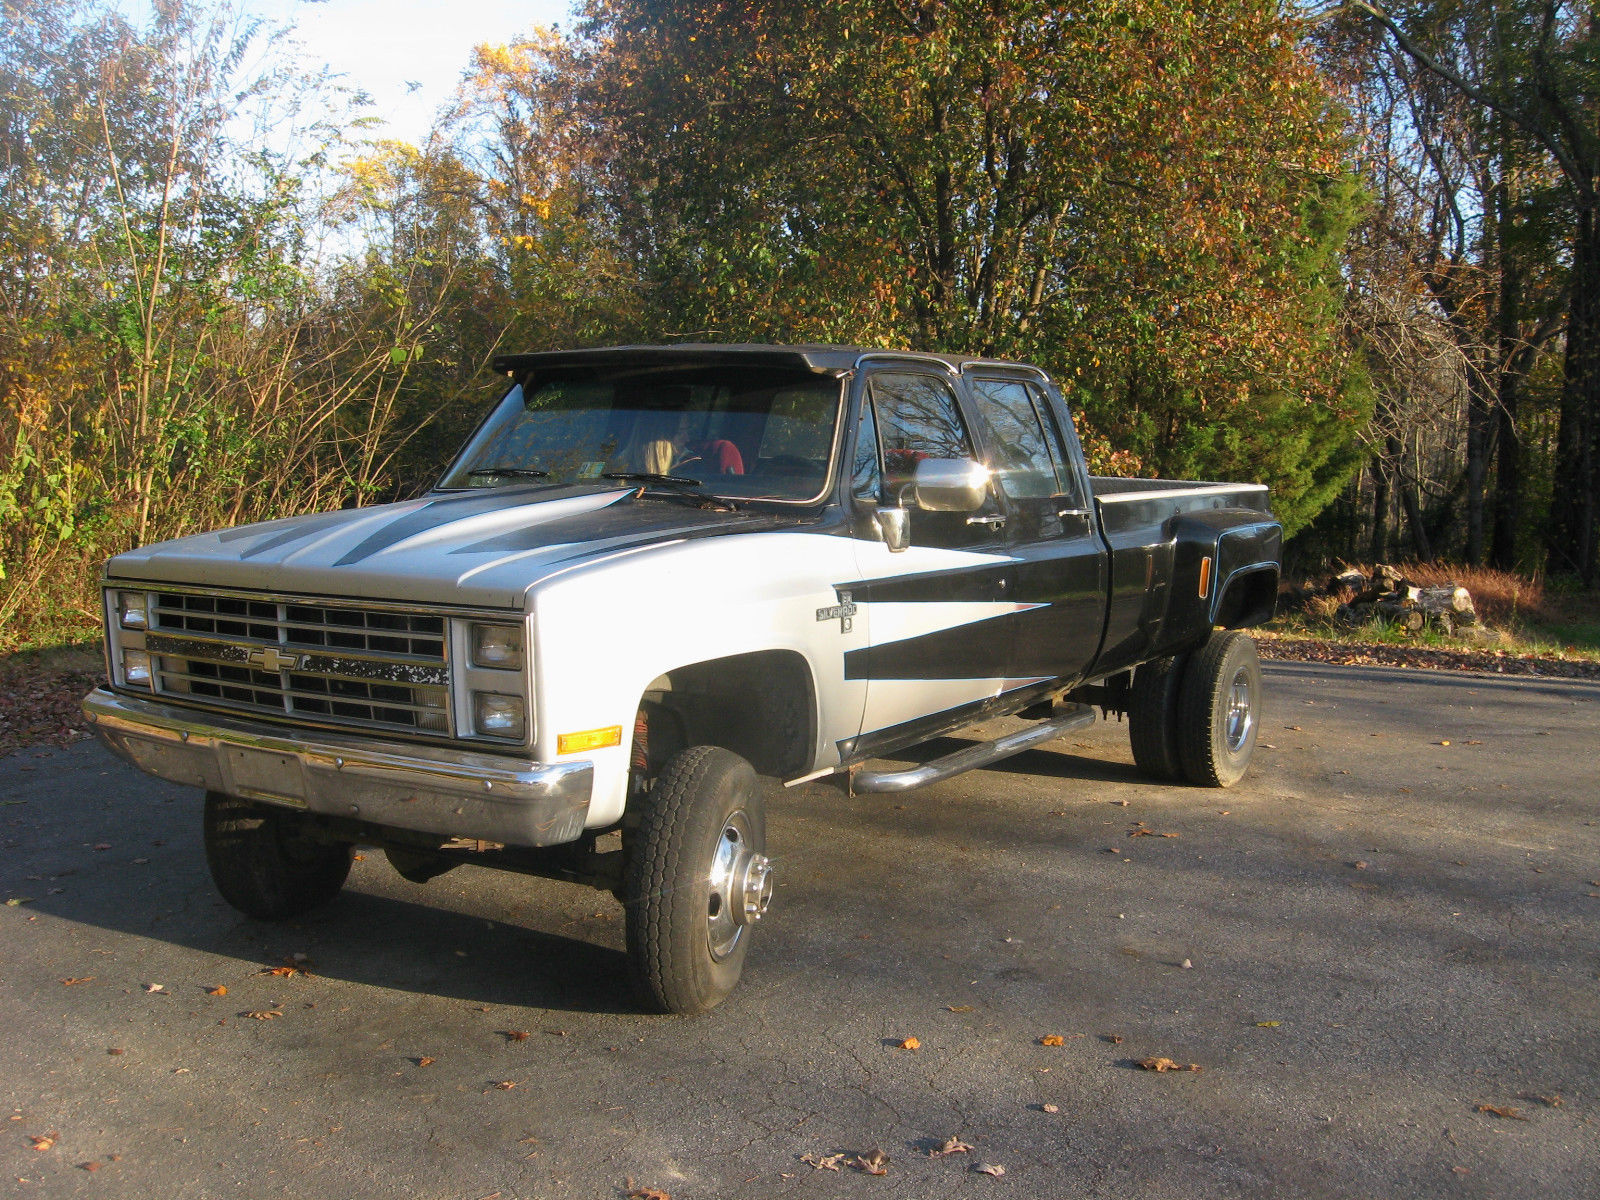 1986 chevy 1 ton dually crew cab lifted 4x4 pick up classic chevrolet silverado 3500 1986 for sale. Black Bedroom Furniture Sets. Home Design Ideas